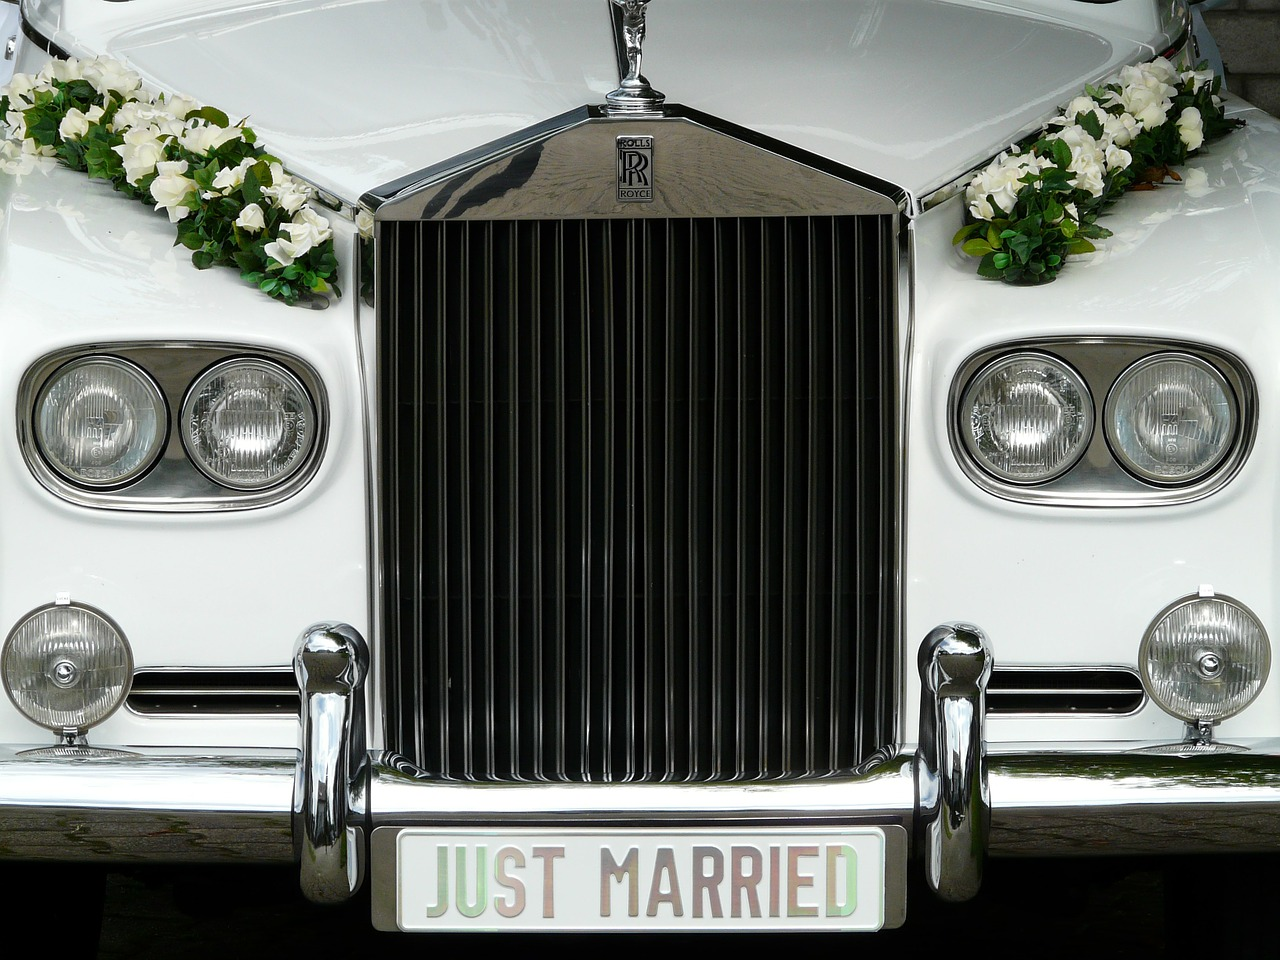 marry bridal car marriage free photo